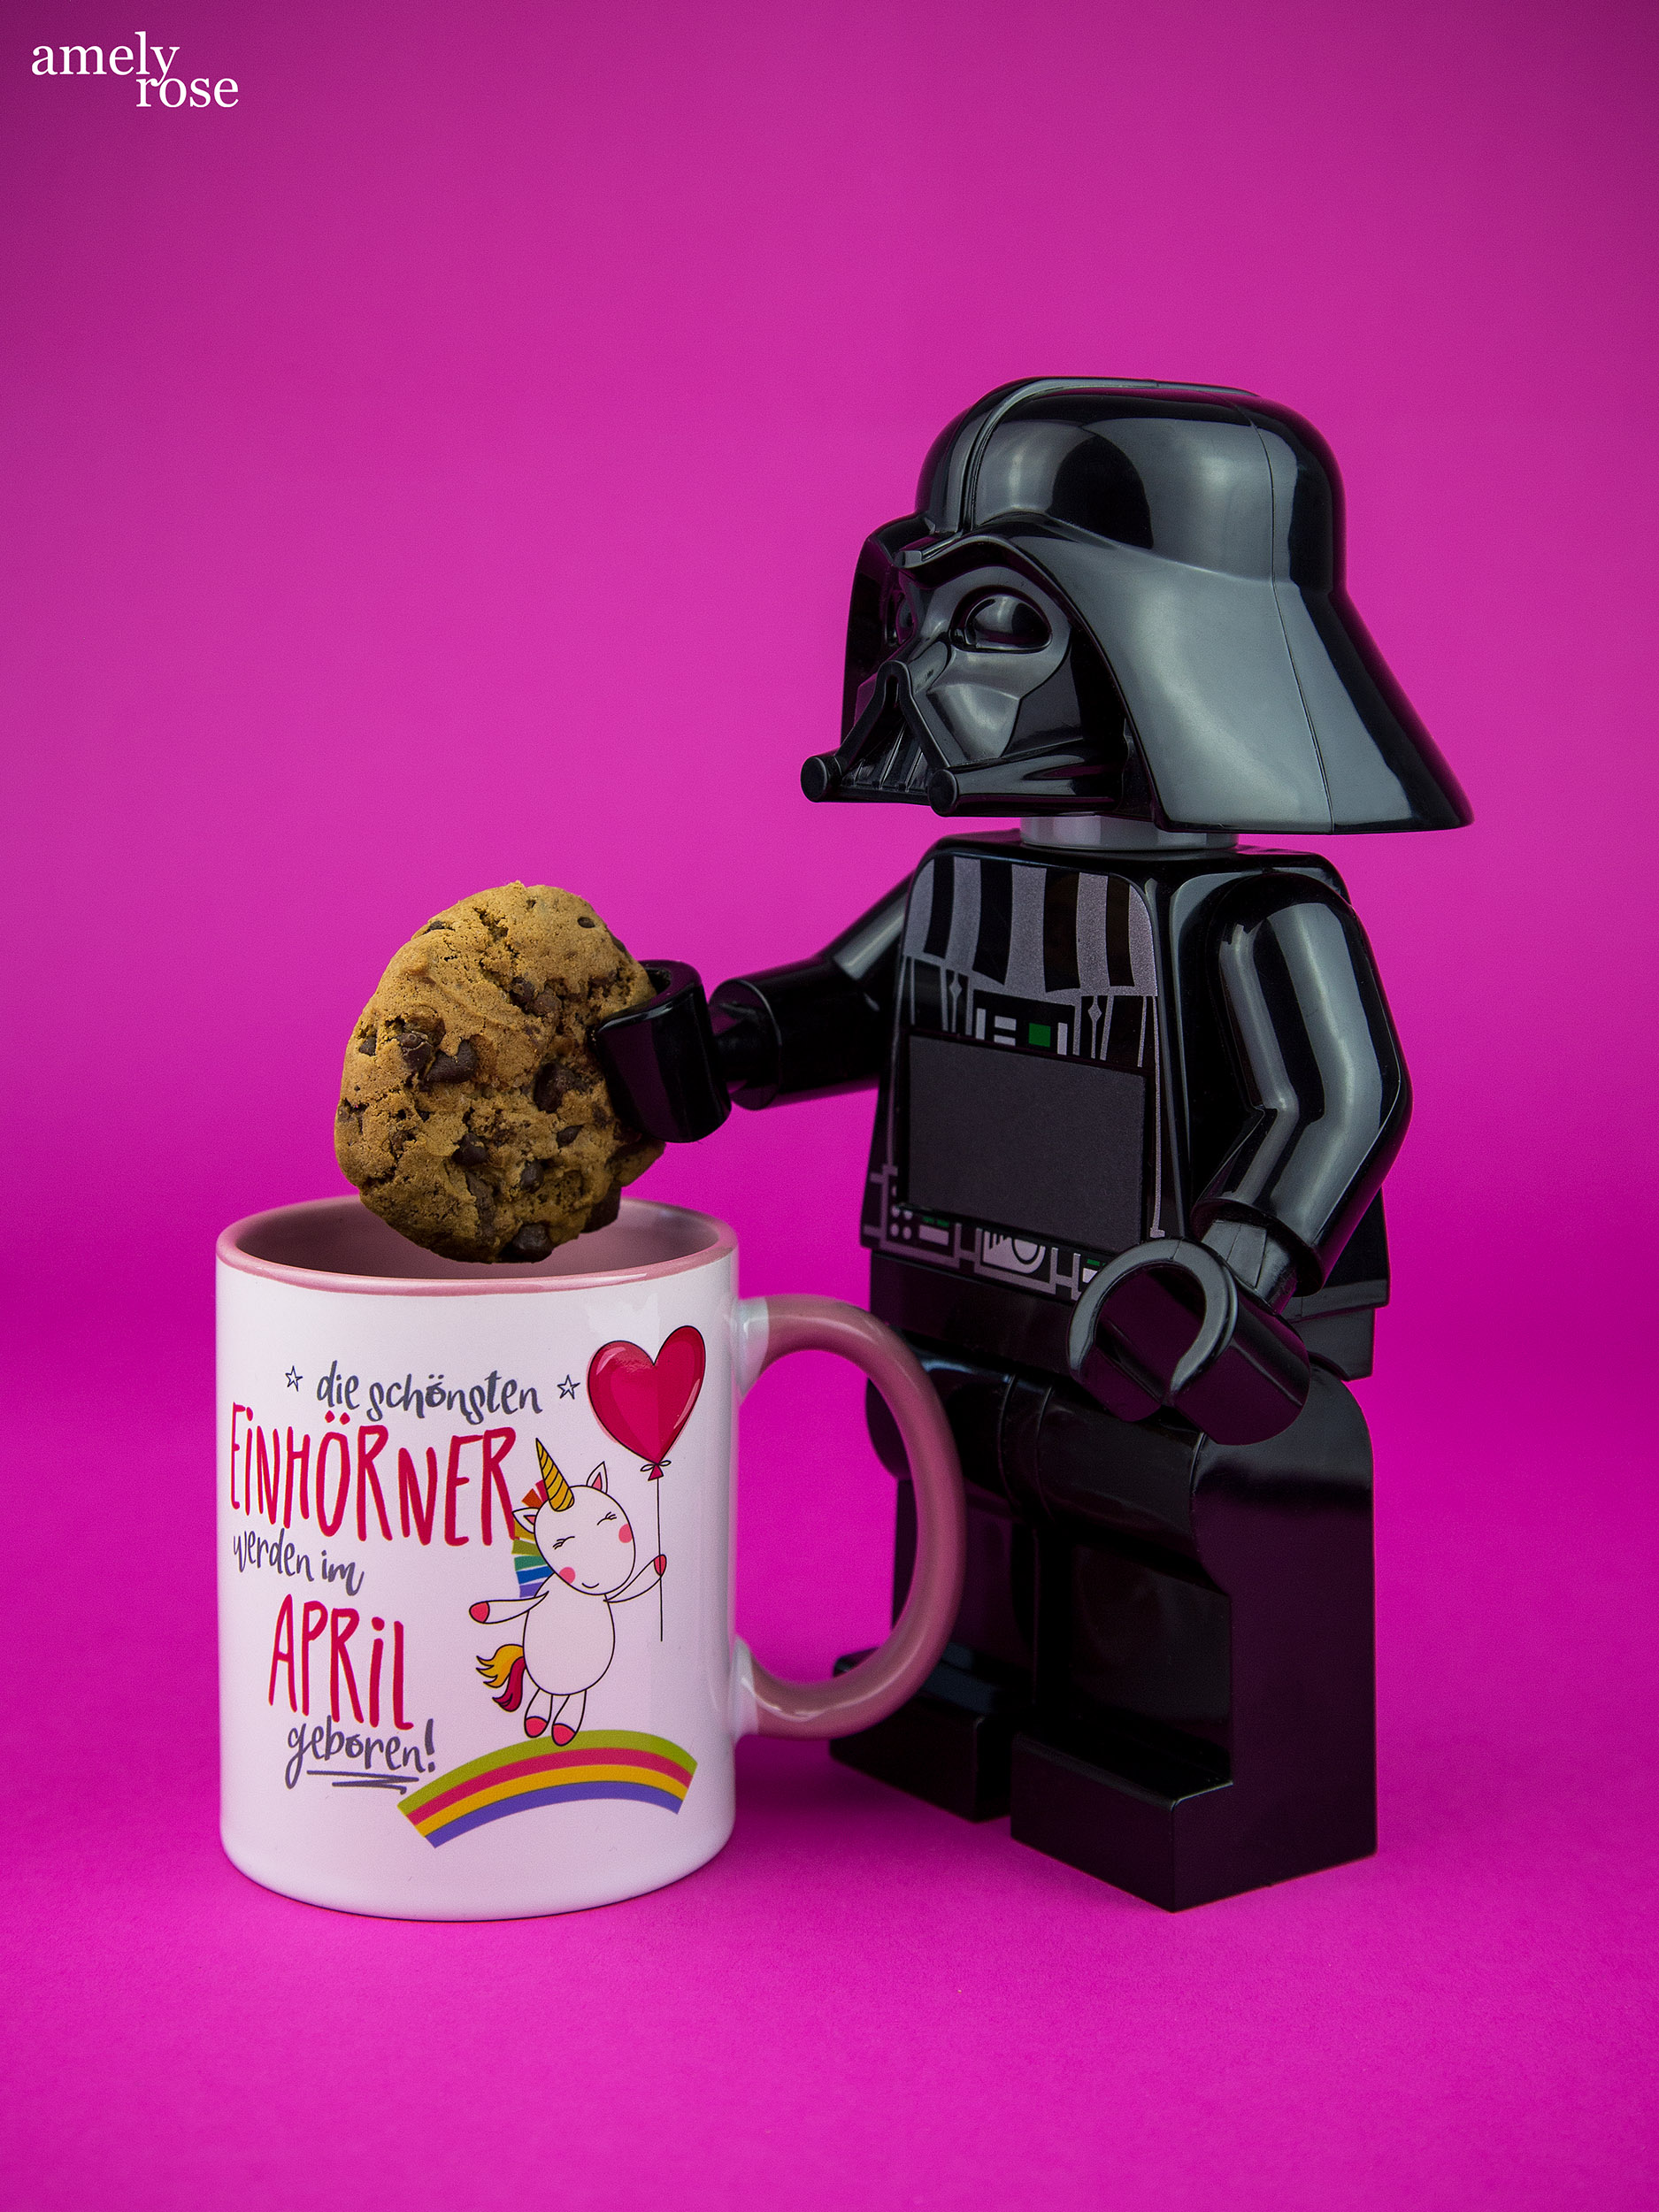 Amely Rose, german influencer und deutscher fashionblog pink star wars kaffee